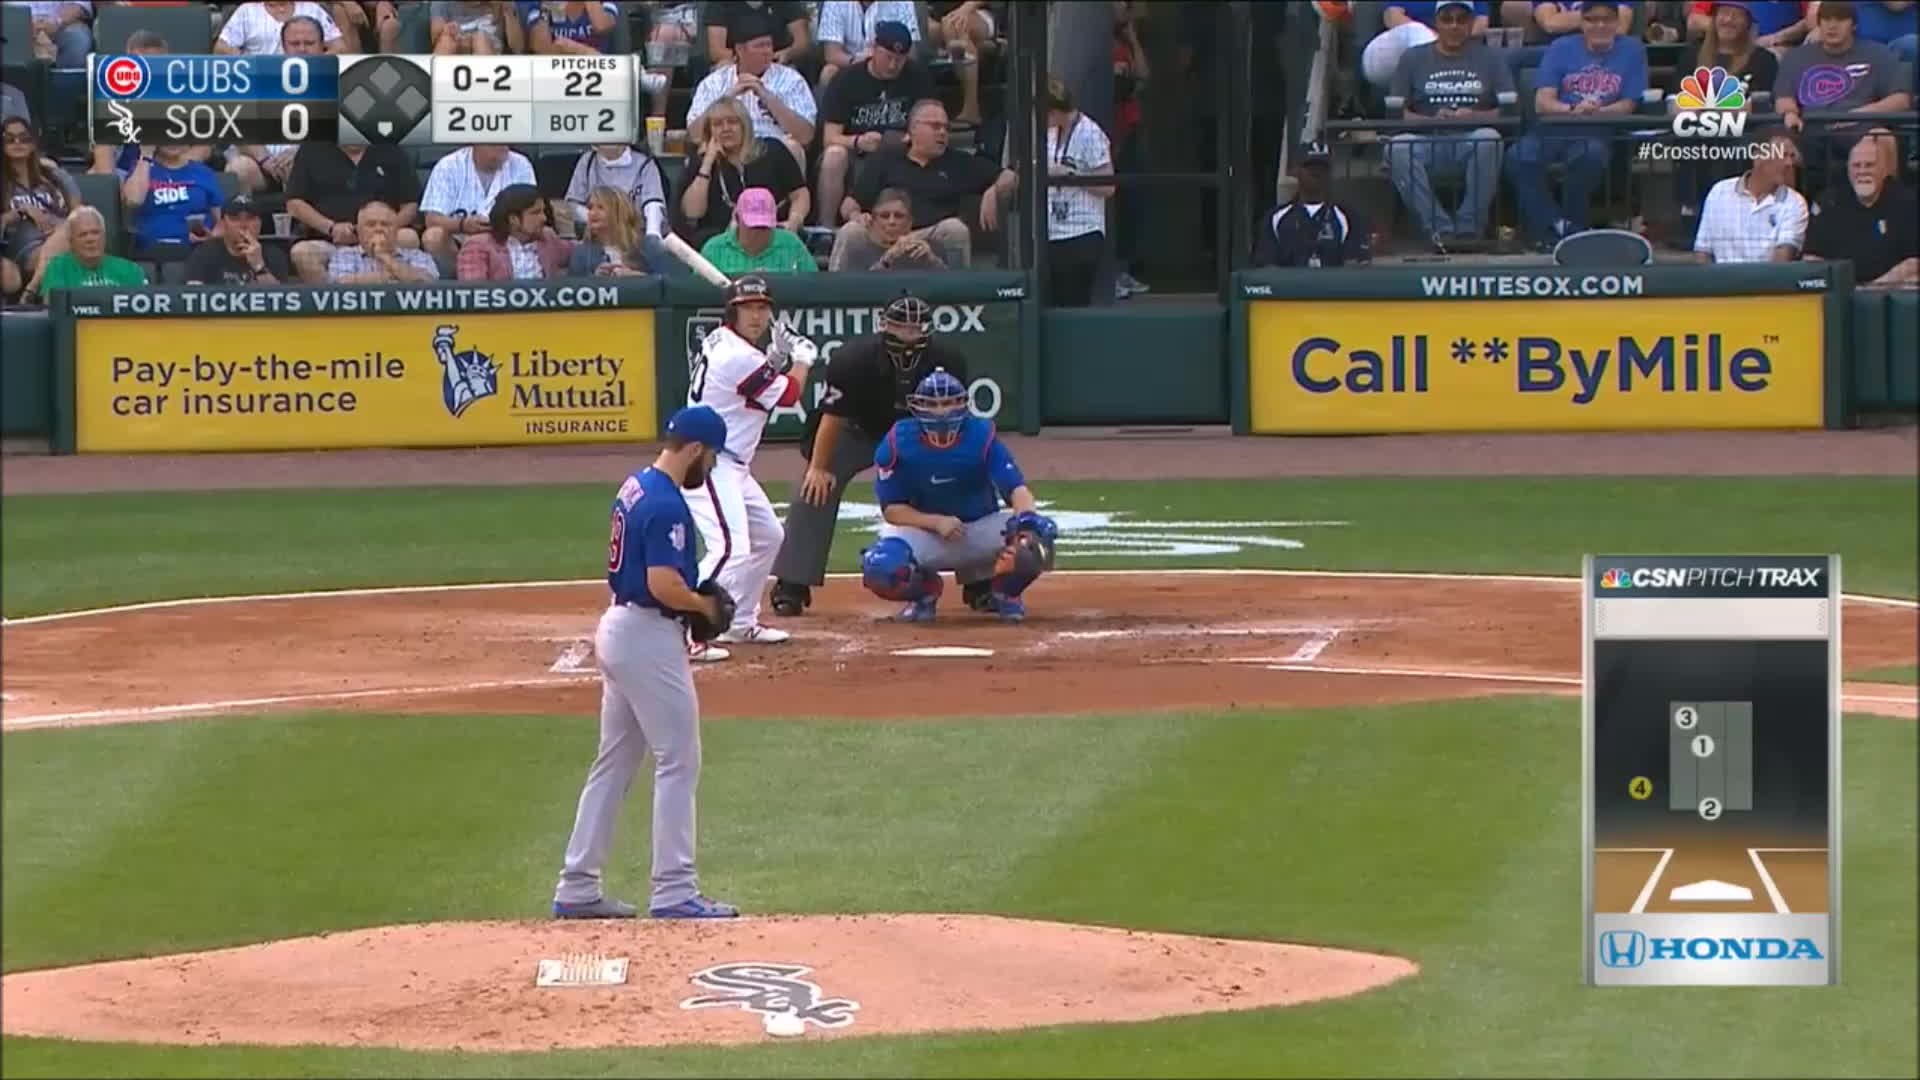 filthypitches, Jake Arrieta Changeup pitch GIFs